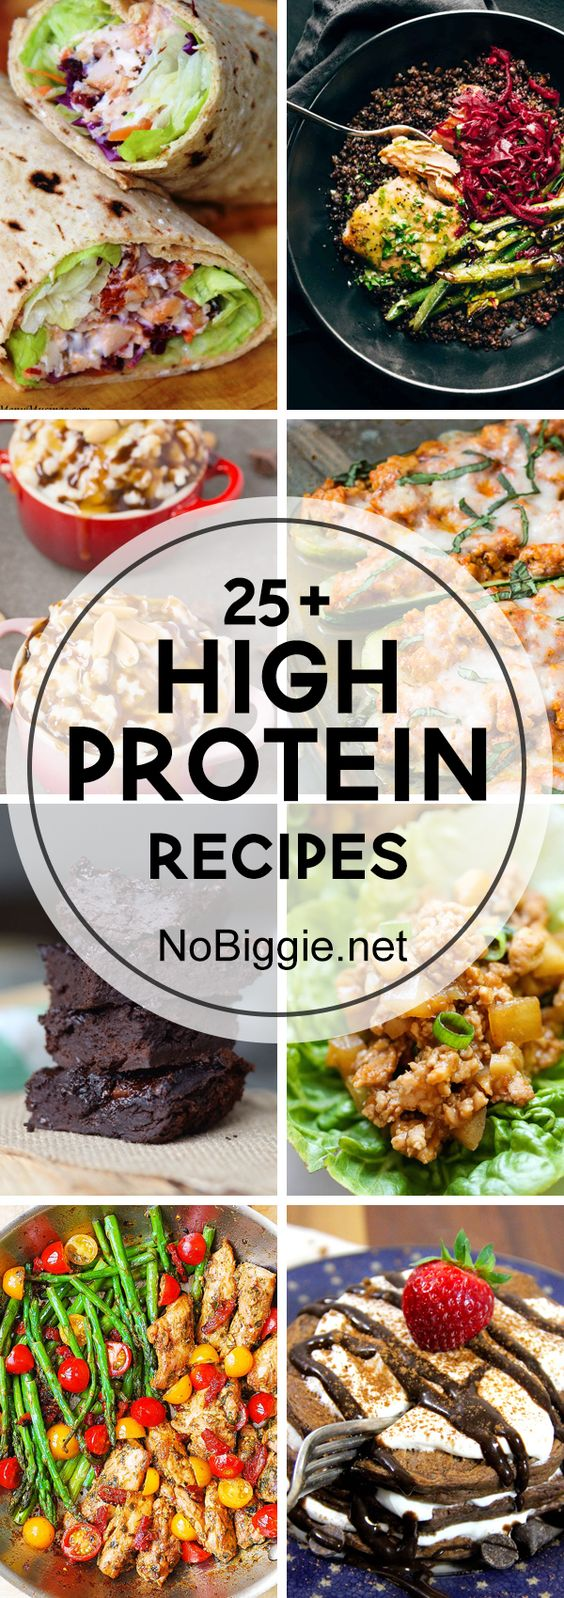 25+ High Protein Recipes